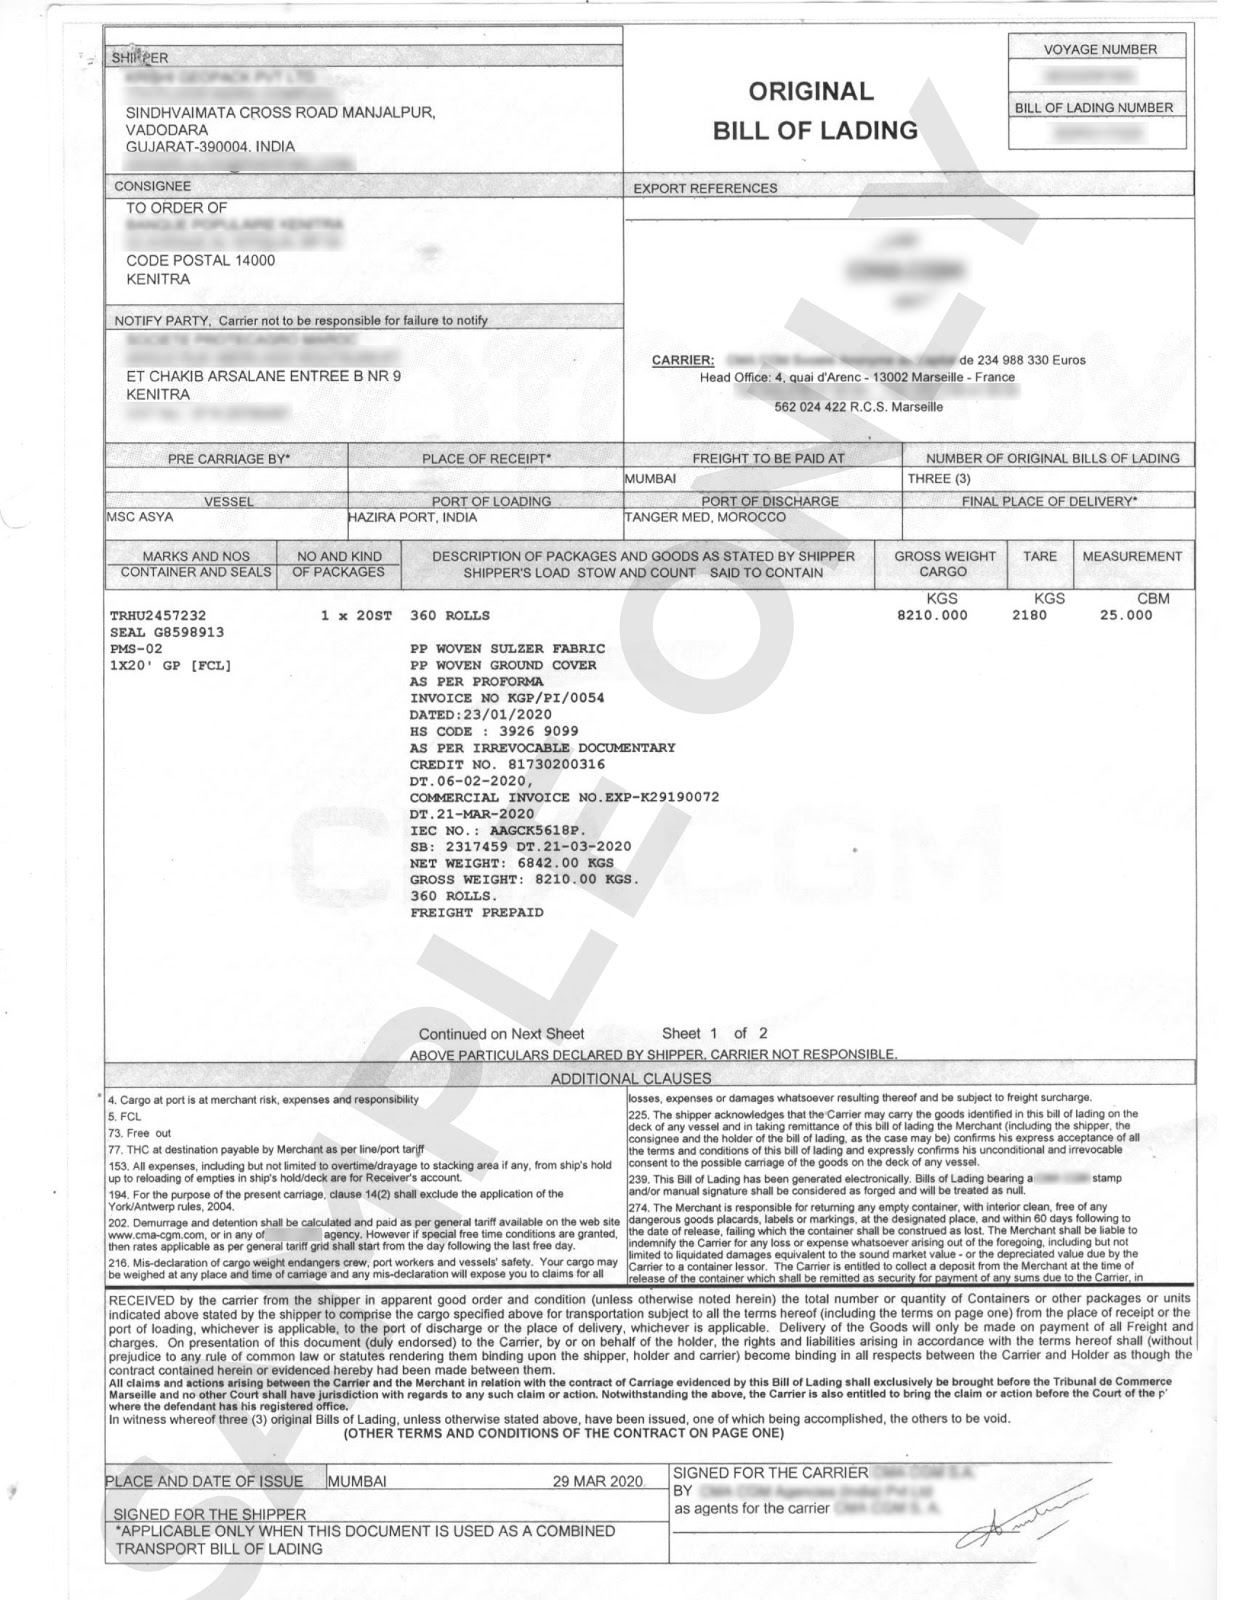 Sample image of a Master Bill of Lading